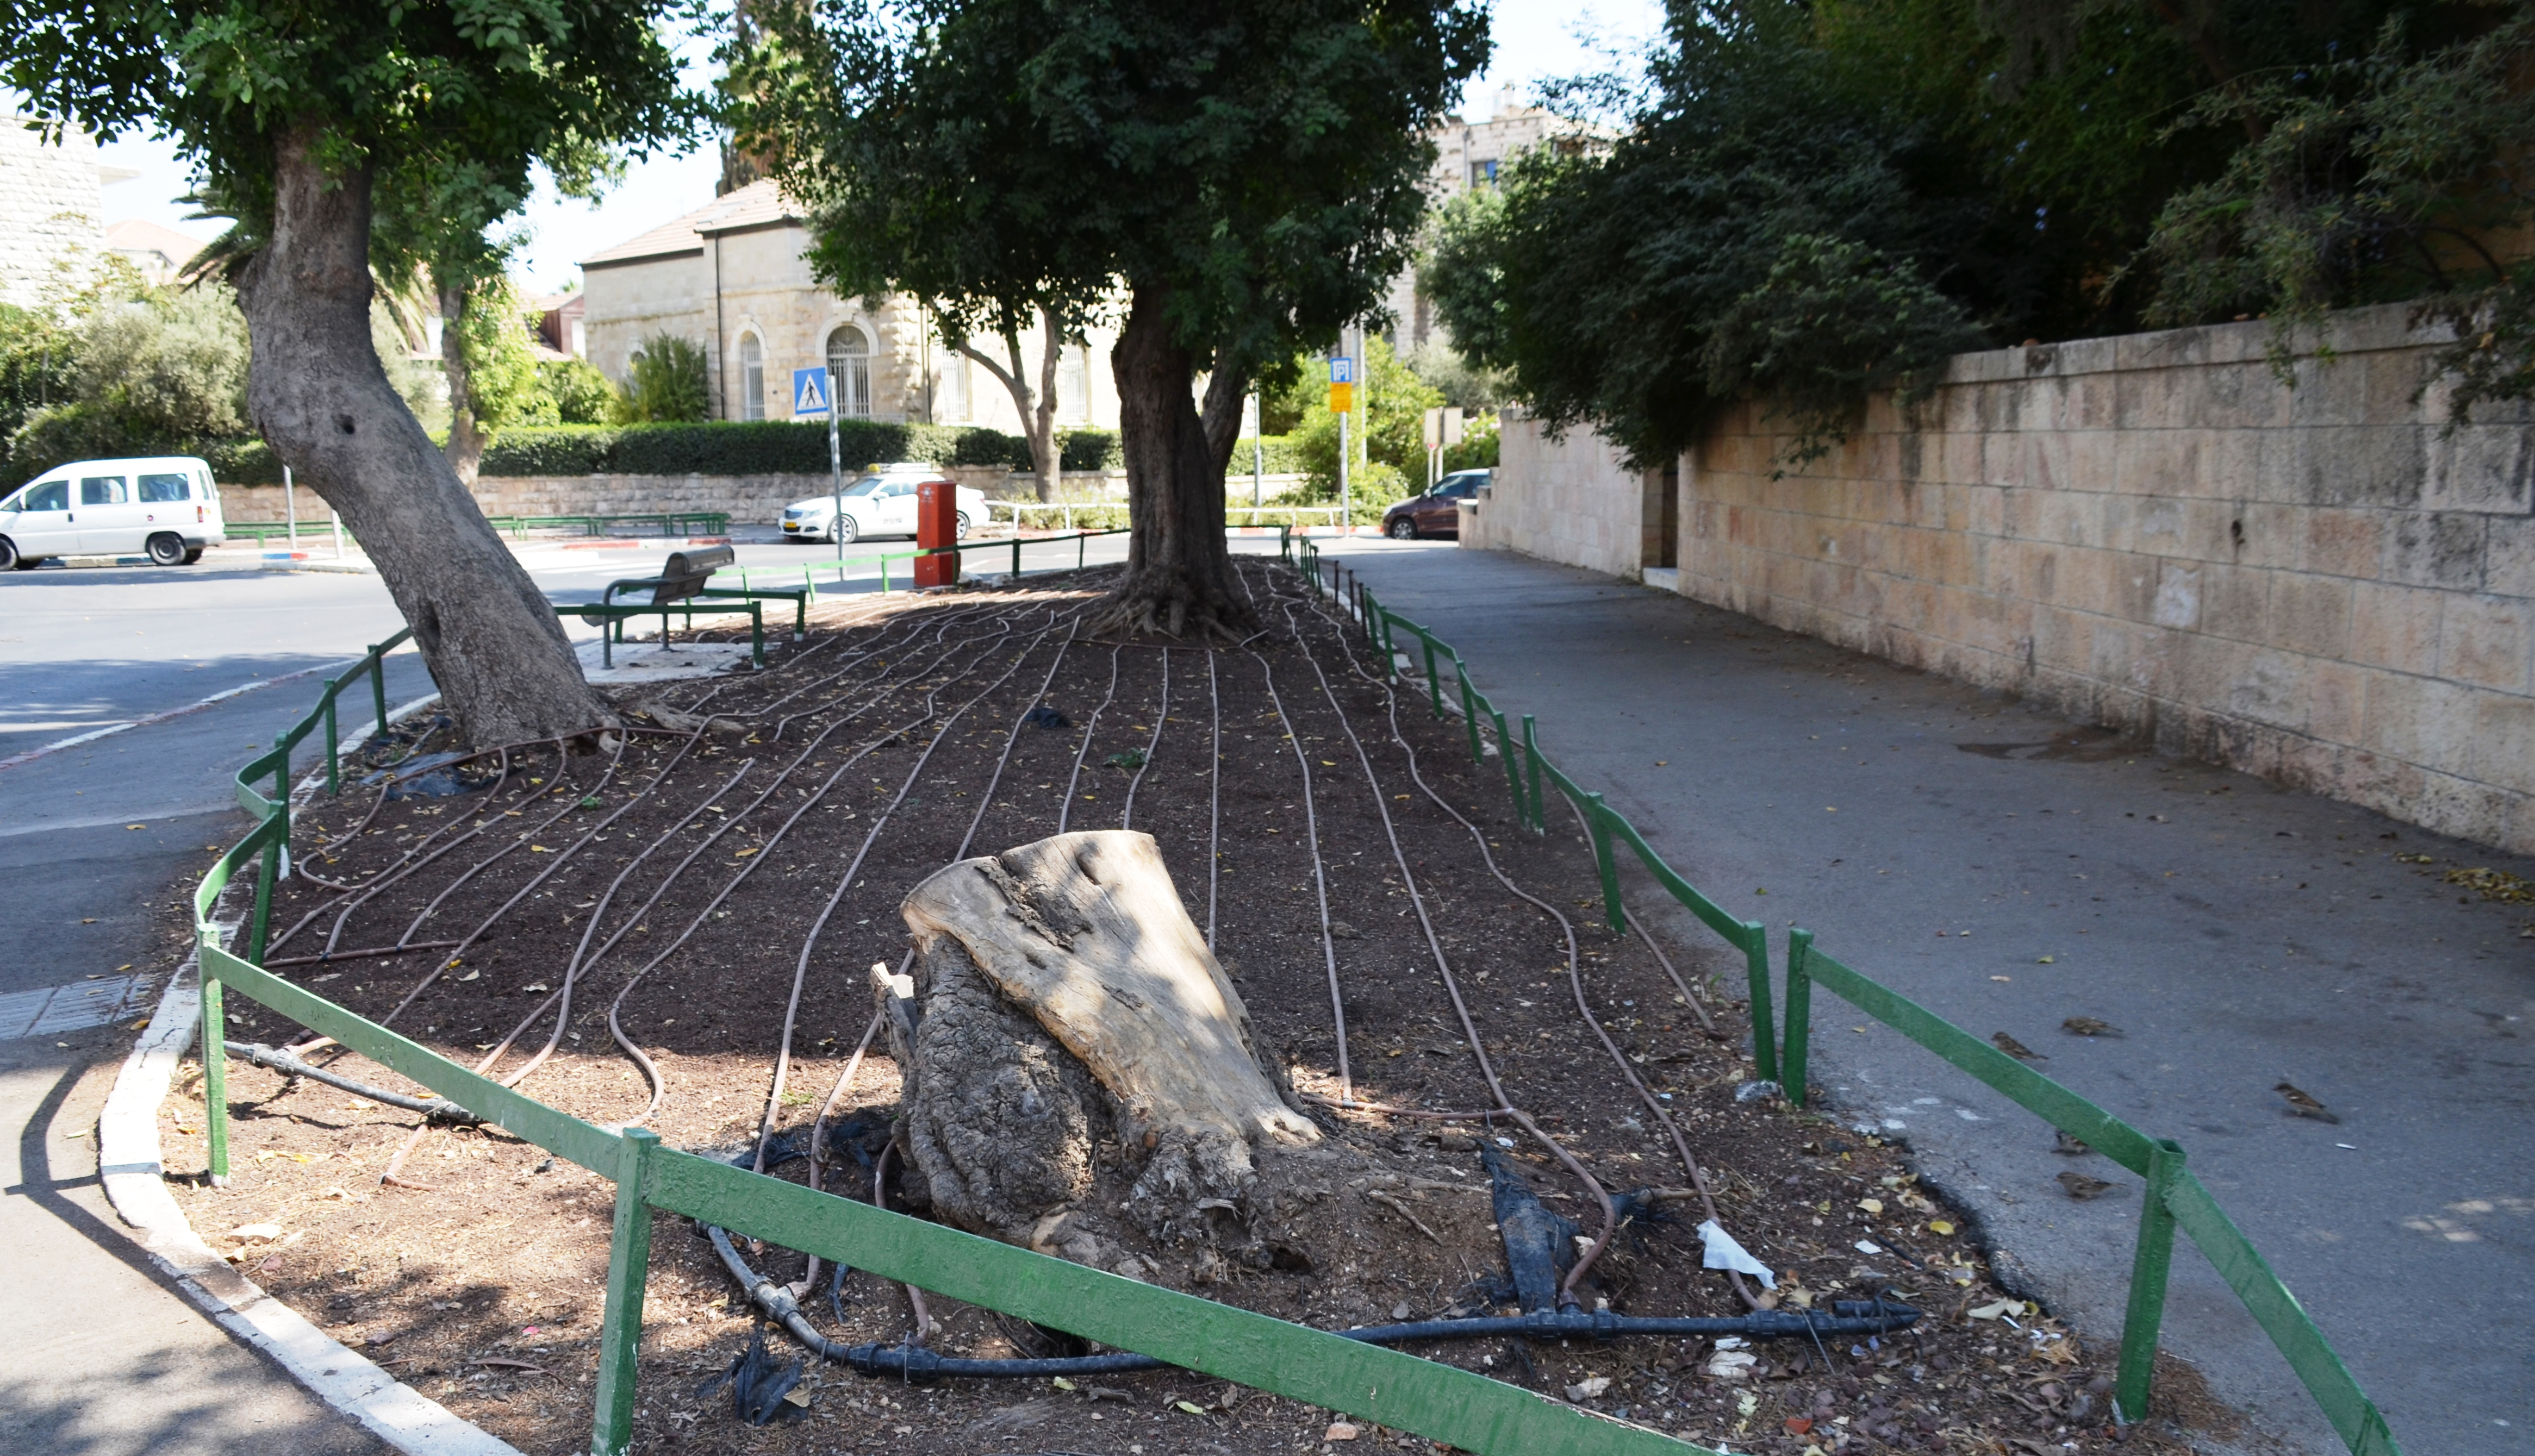 flower bed jerusalem Israel ready for planting